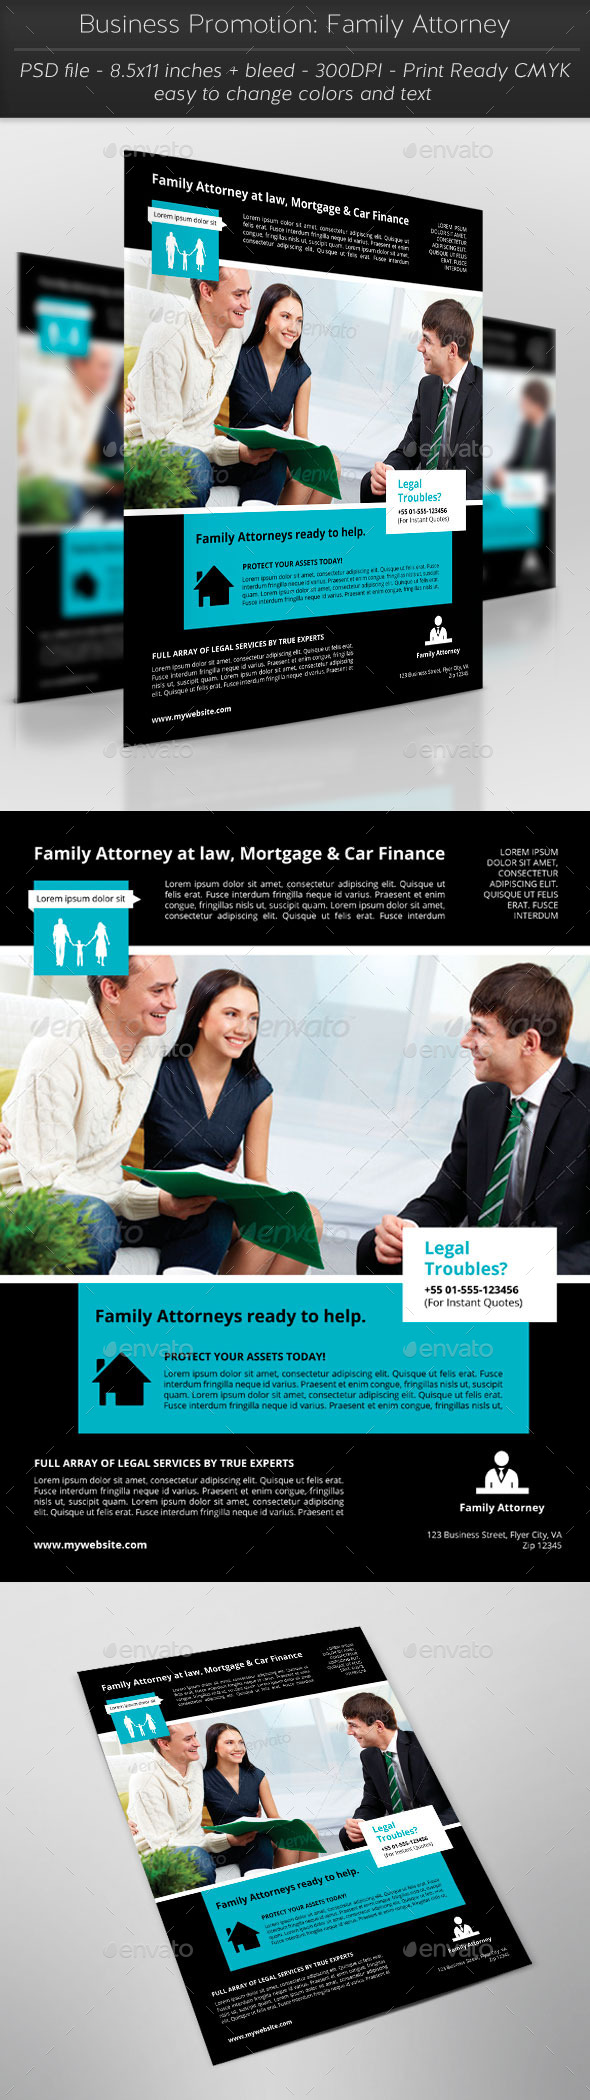 Business Promotion Family Attorney